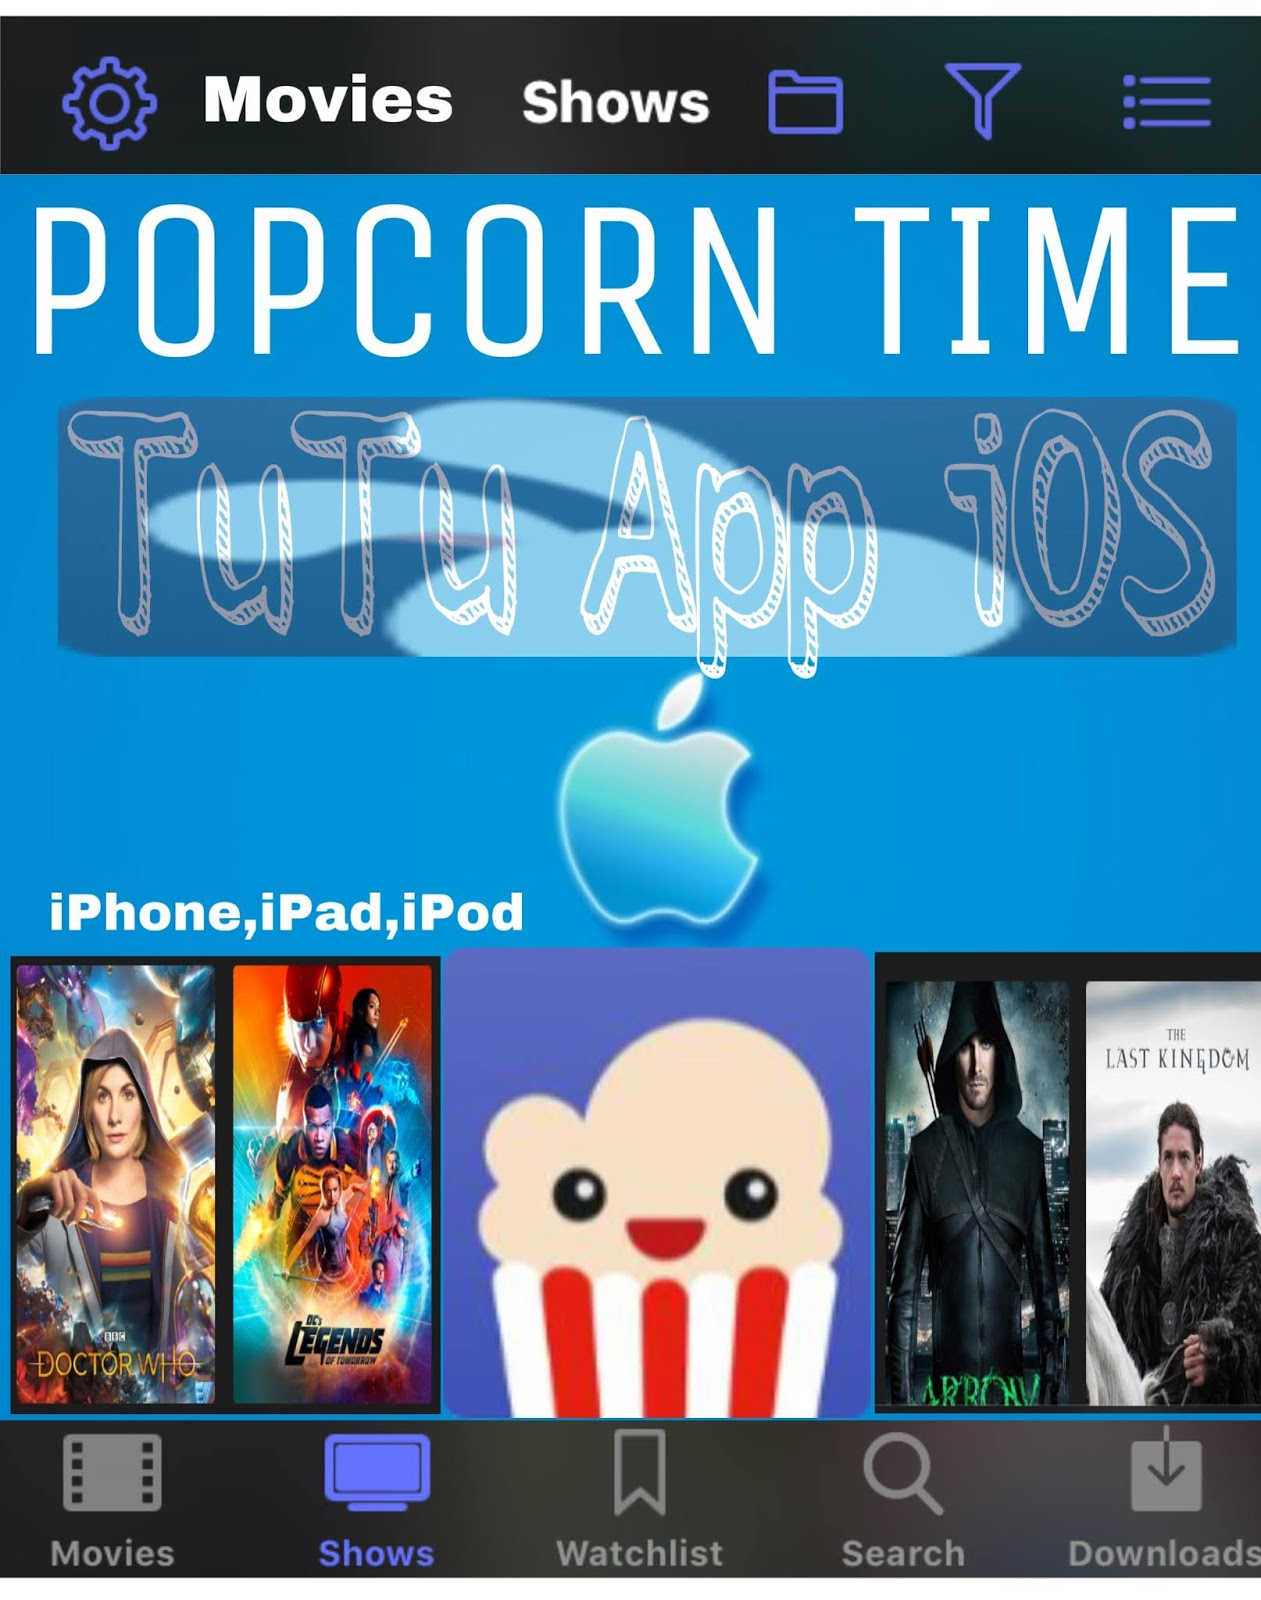 PopcornTime Free Entertainment App For iOS Users